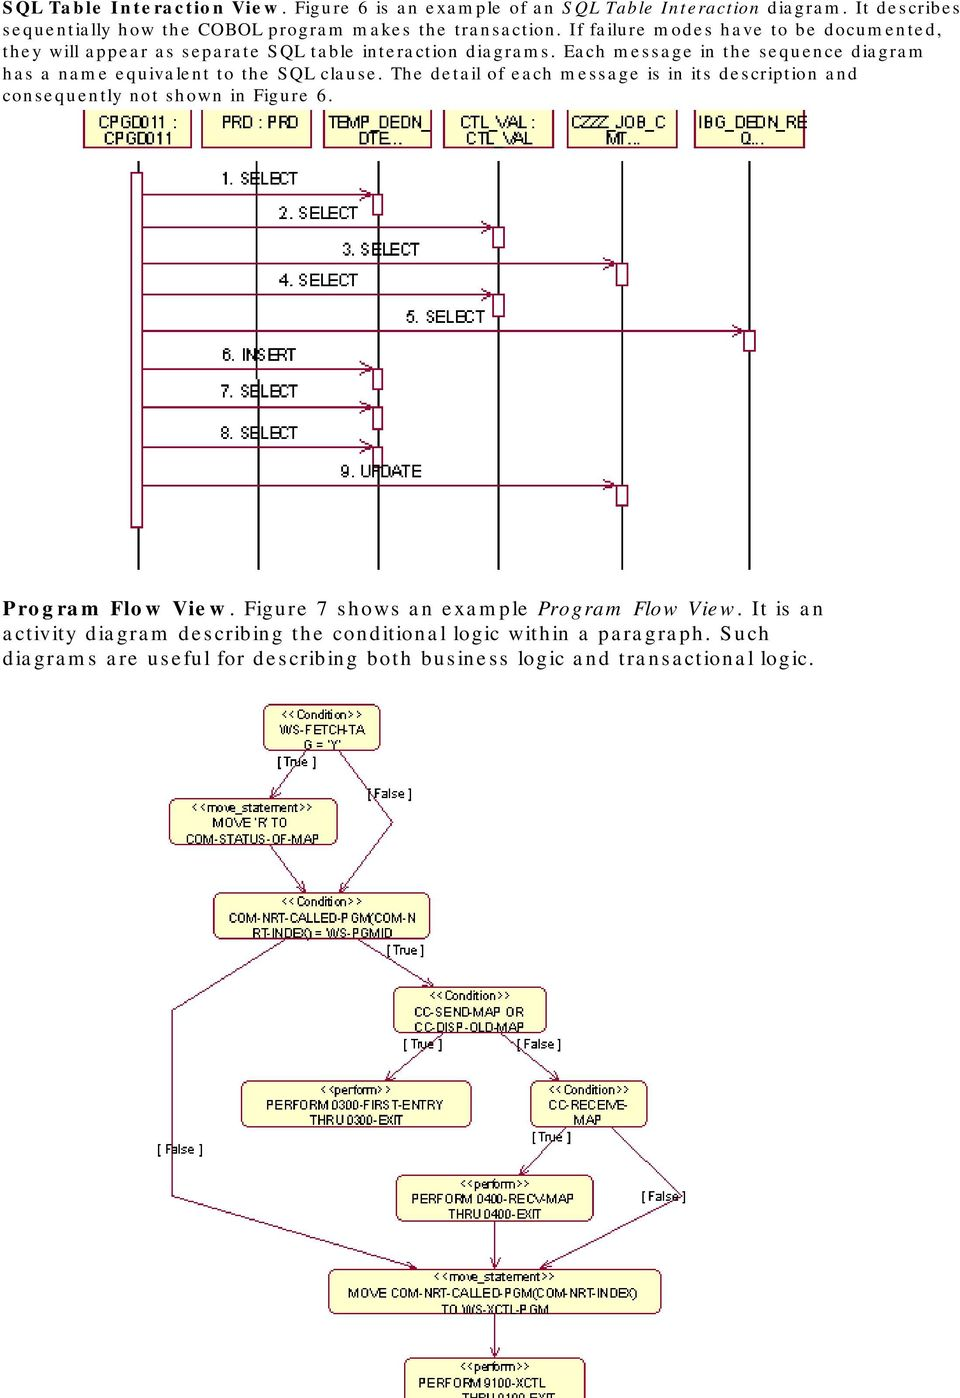 Each message in the sequence diagram has a name equivalent to the SQL clause. The detail of each message is in its description and consequently not shown in Figure 6.